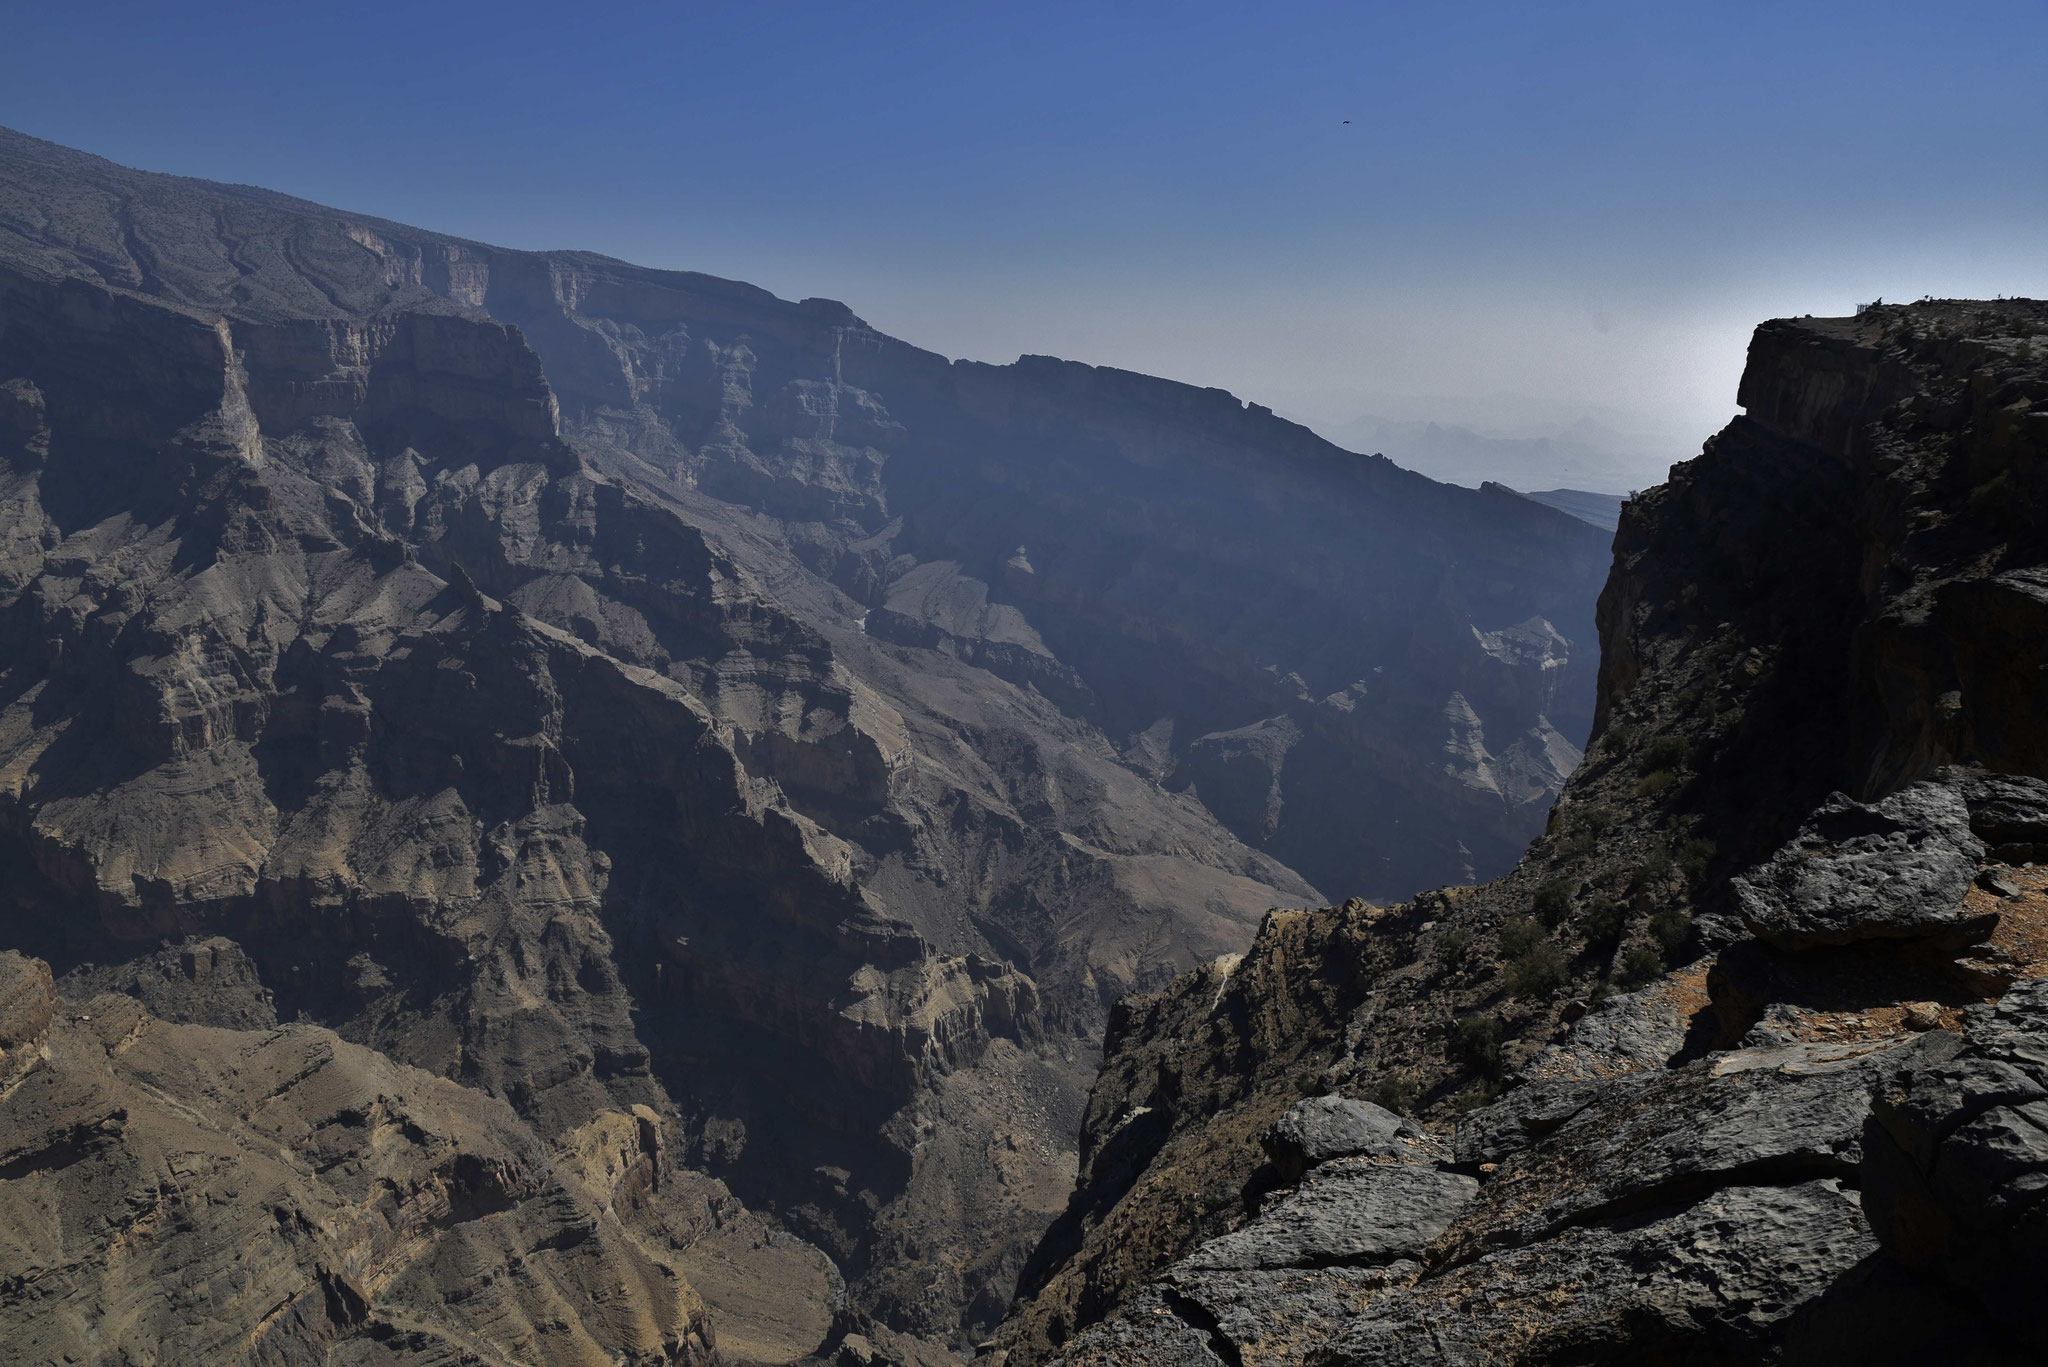 Schlucht am Jebel Shams